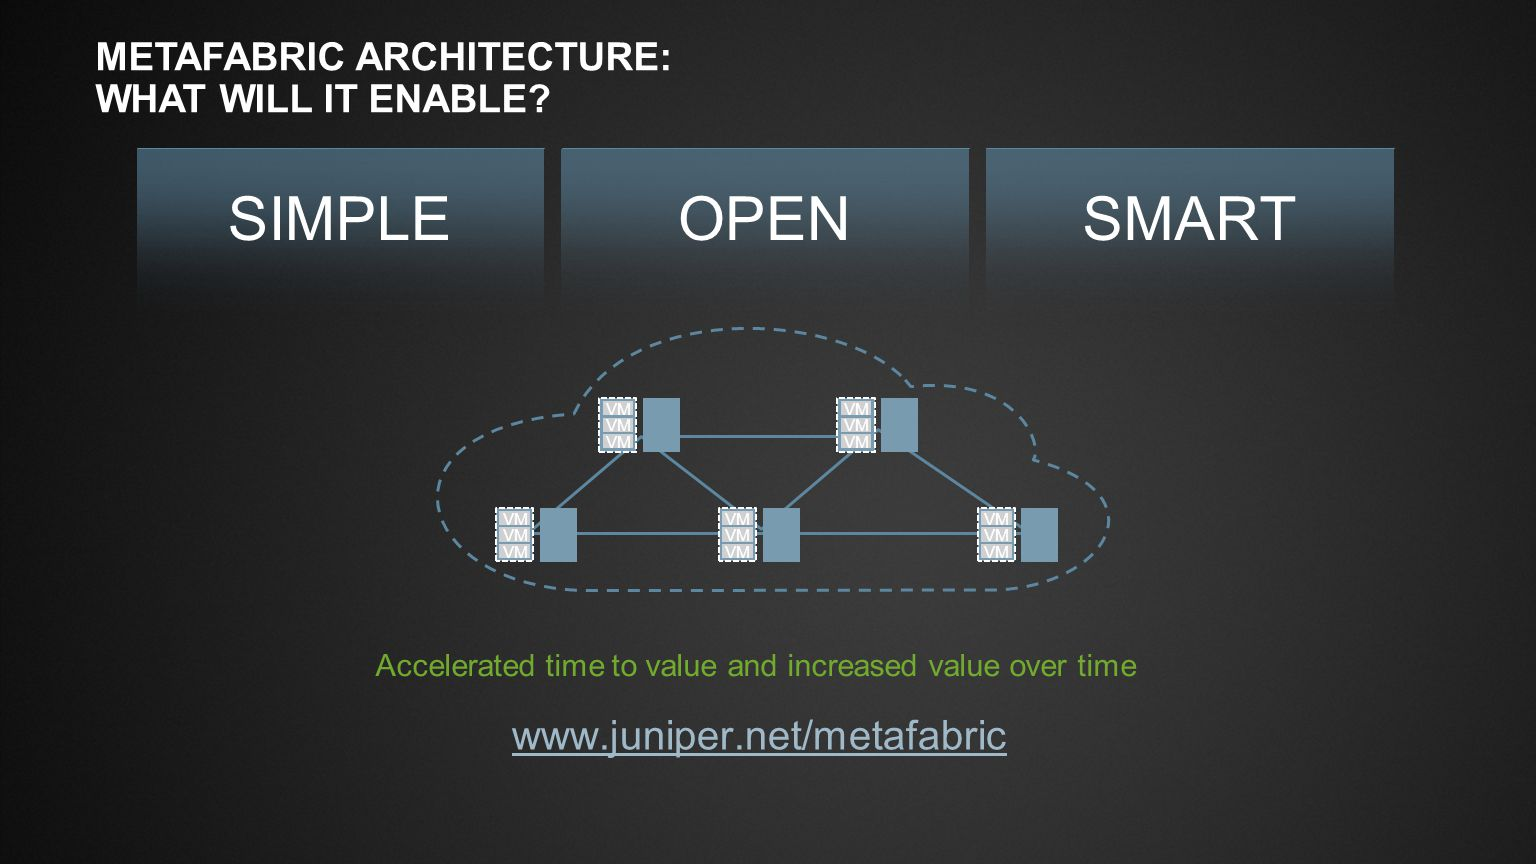 MetaFabric ARCHITECTURE: what will it enable